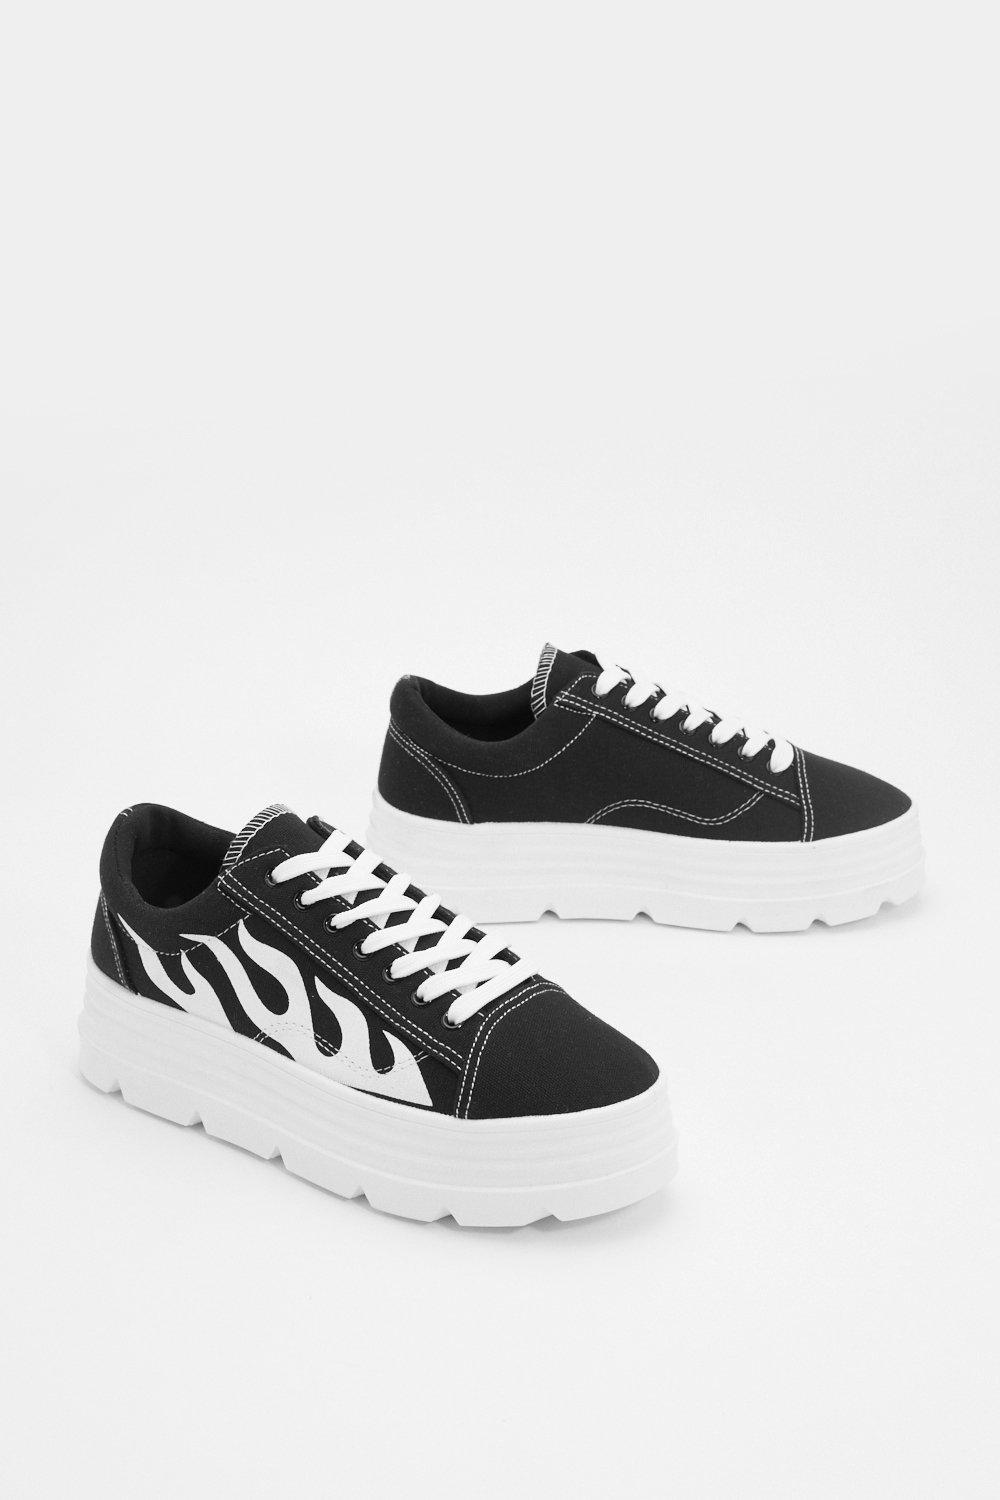 7e070cf0d The Heat is On Platform Sneakers | Shop Clothes at Nasty Gal!